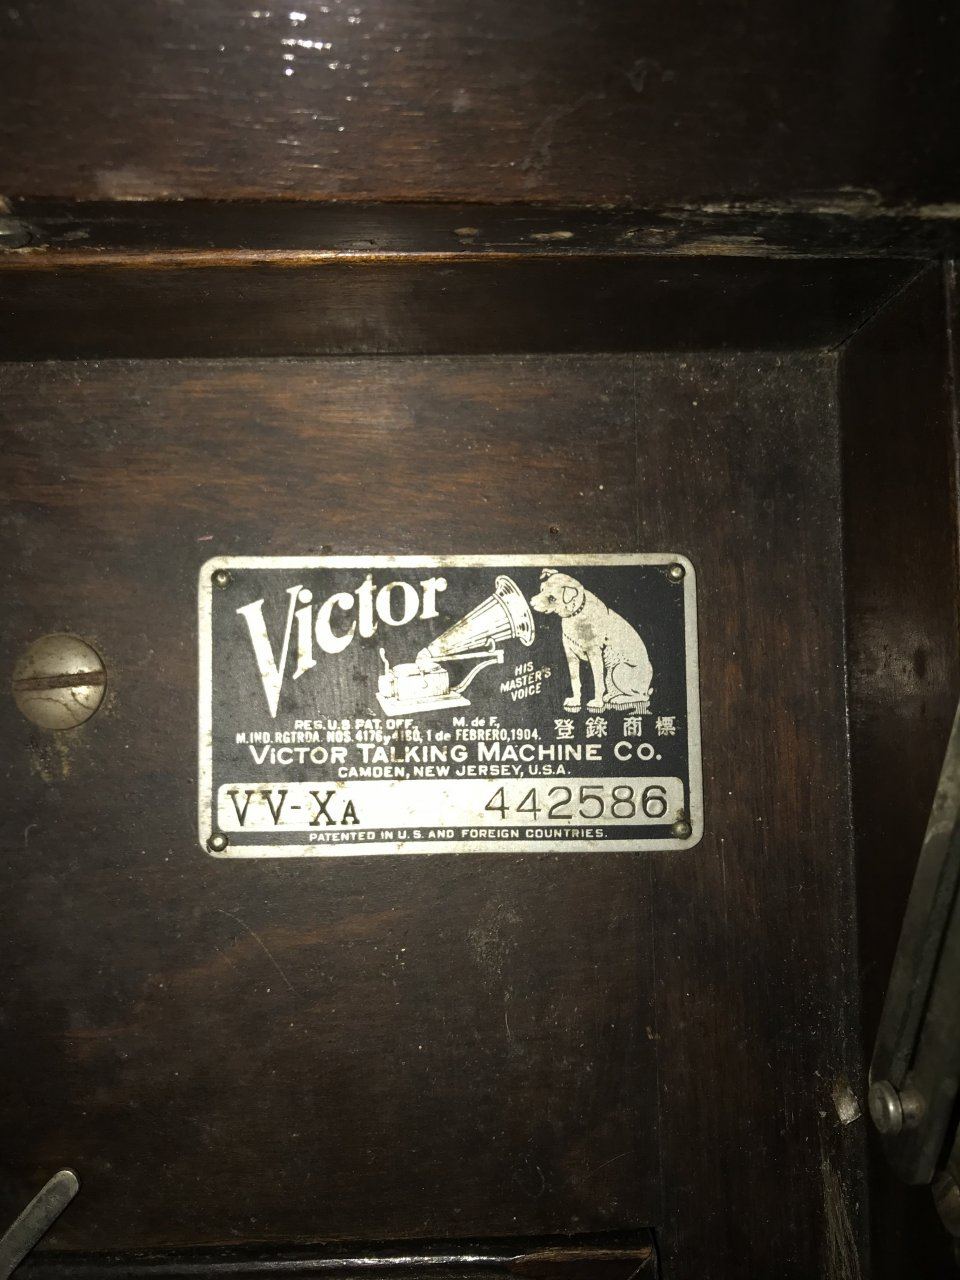 This Is A Victrola Likely From The Late 1800s Or Early